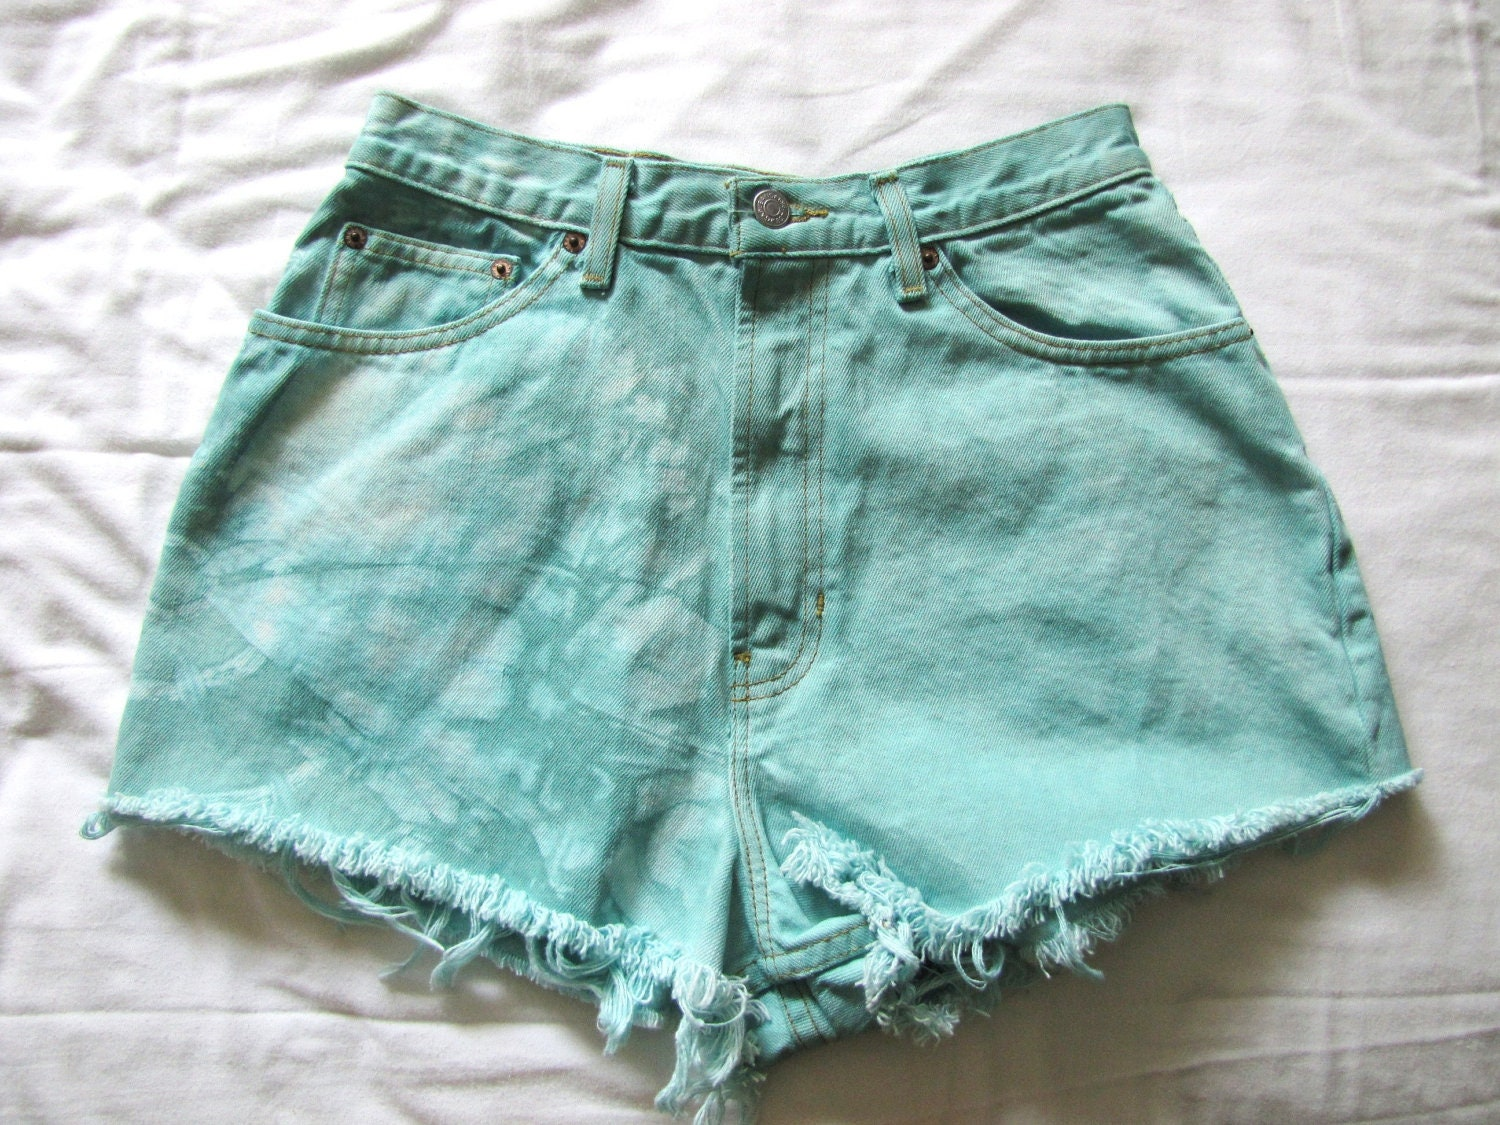 items similar to tie dyed high waisted shorts on etsy